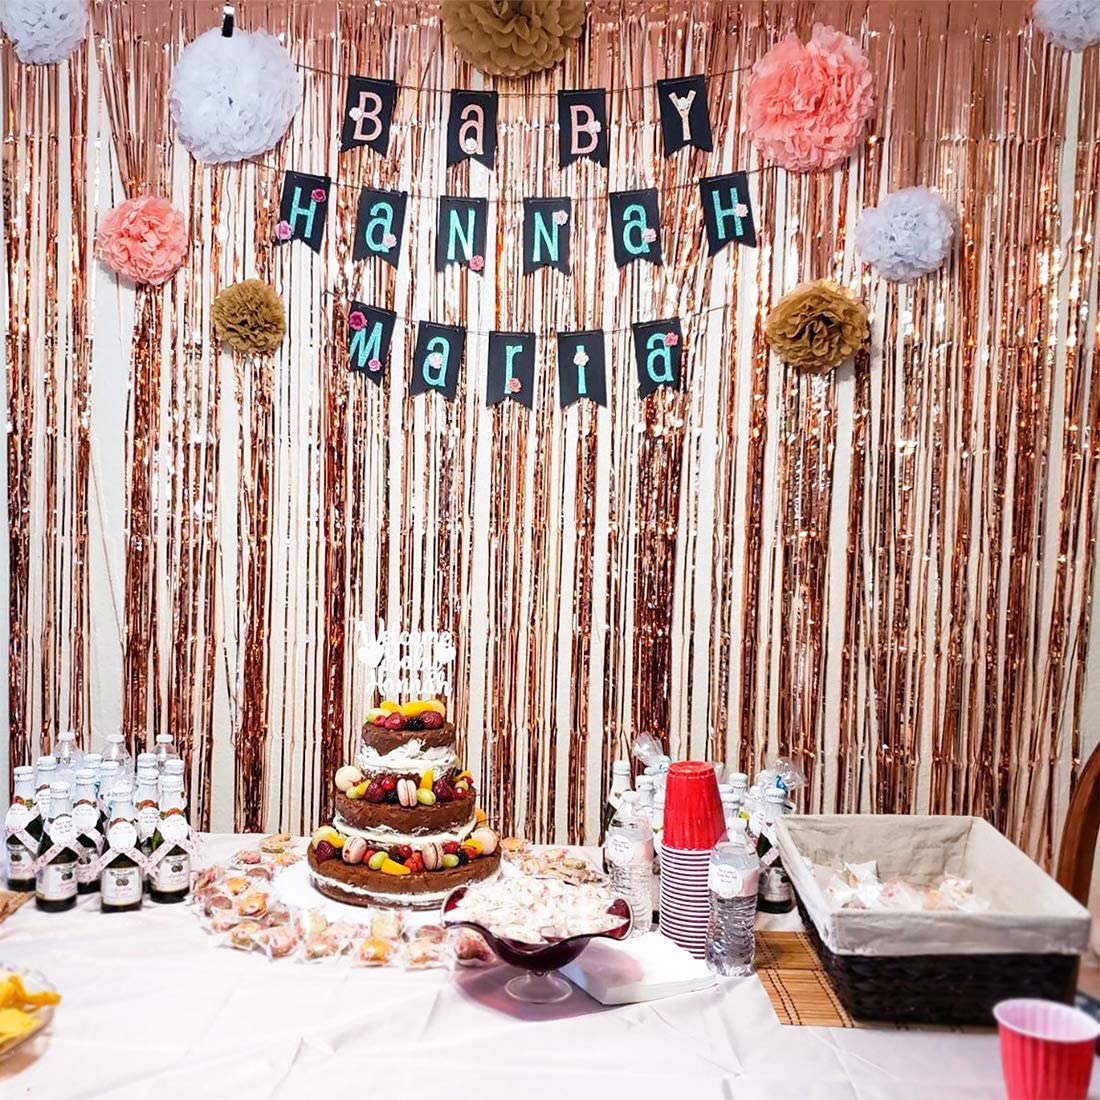 Birthday Rose Gold Photo Booth Backdrop Curtain 2pcs Tinabless Bachelorette Party Decorations Metallic Foil Fringe Curtains for Wedding New Years Christmas Holiday Celebration Party Decorations